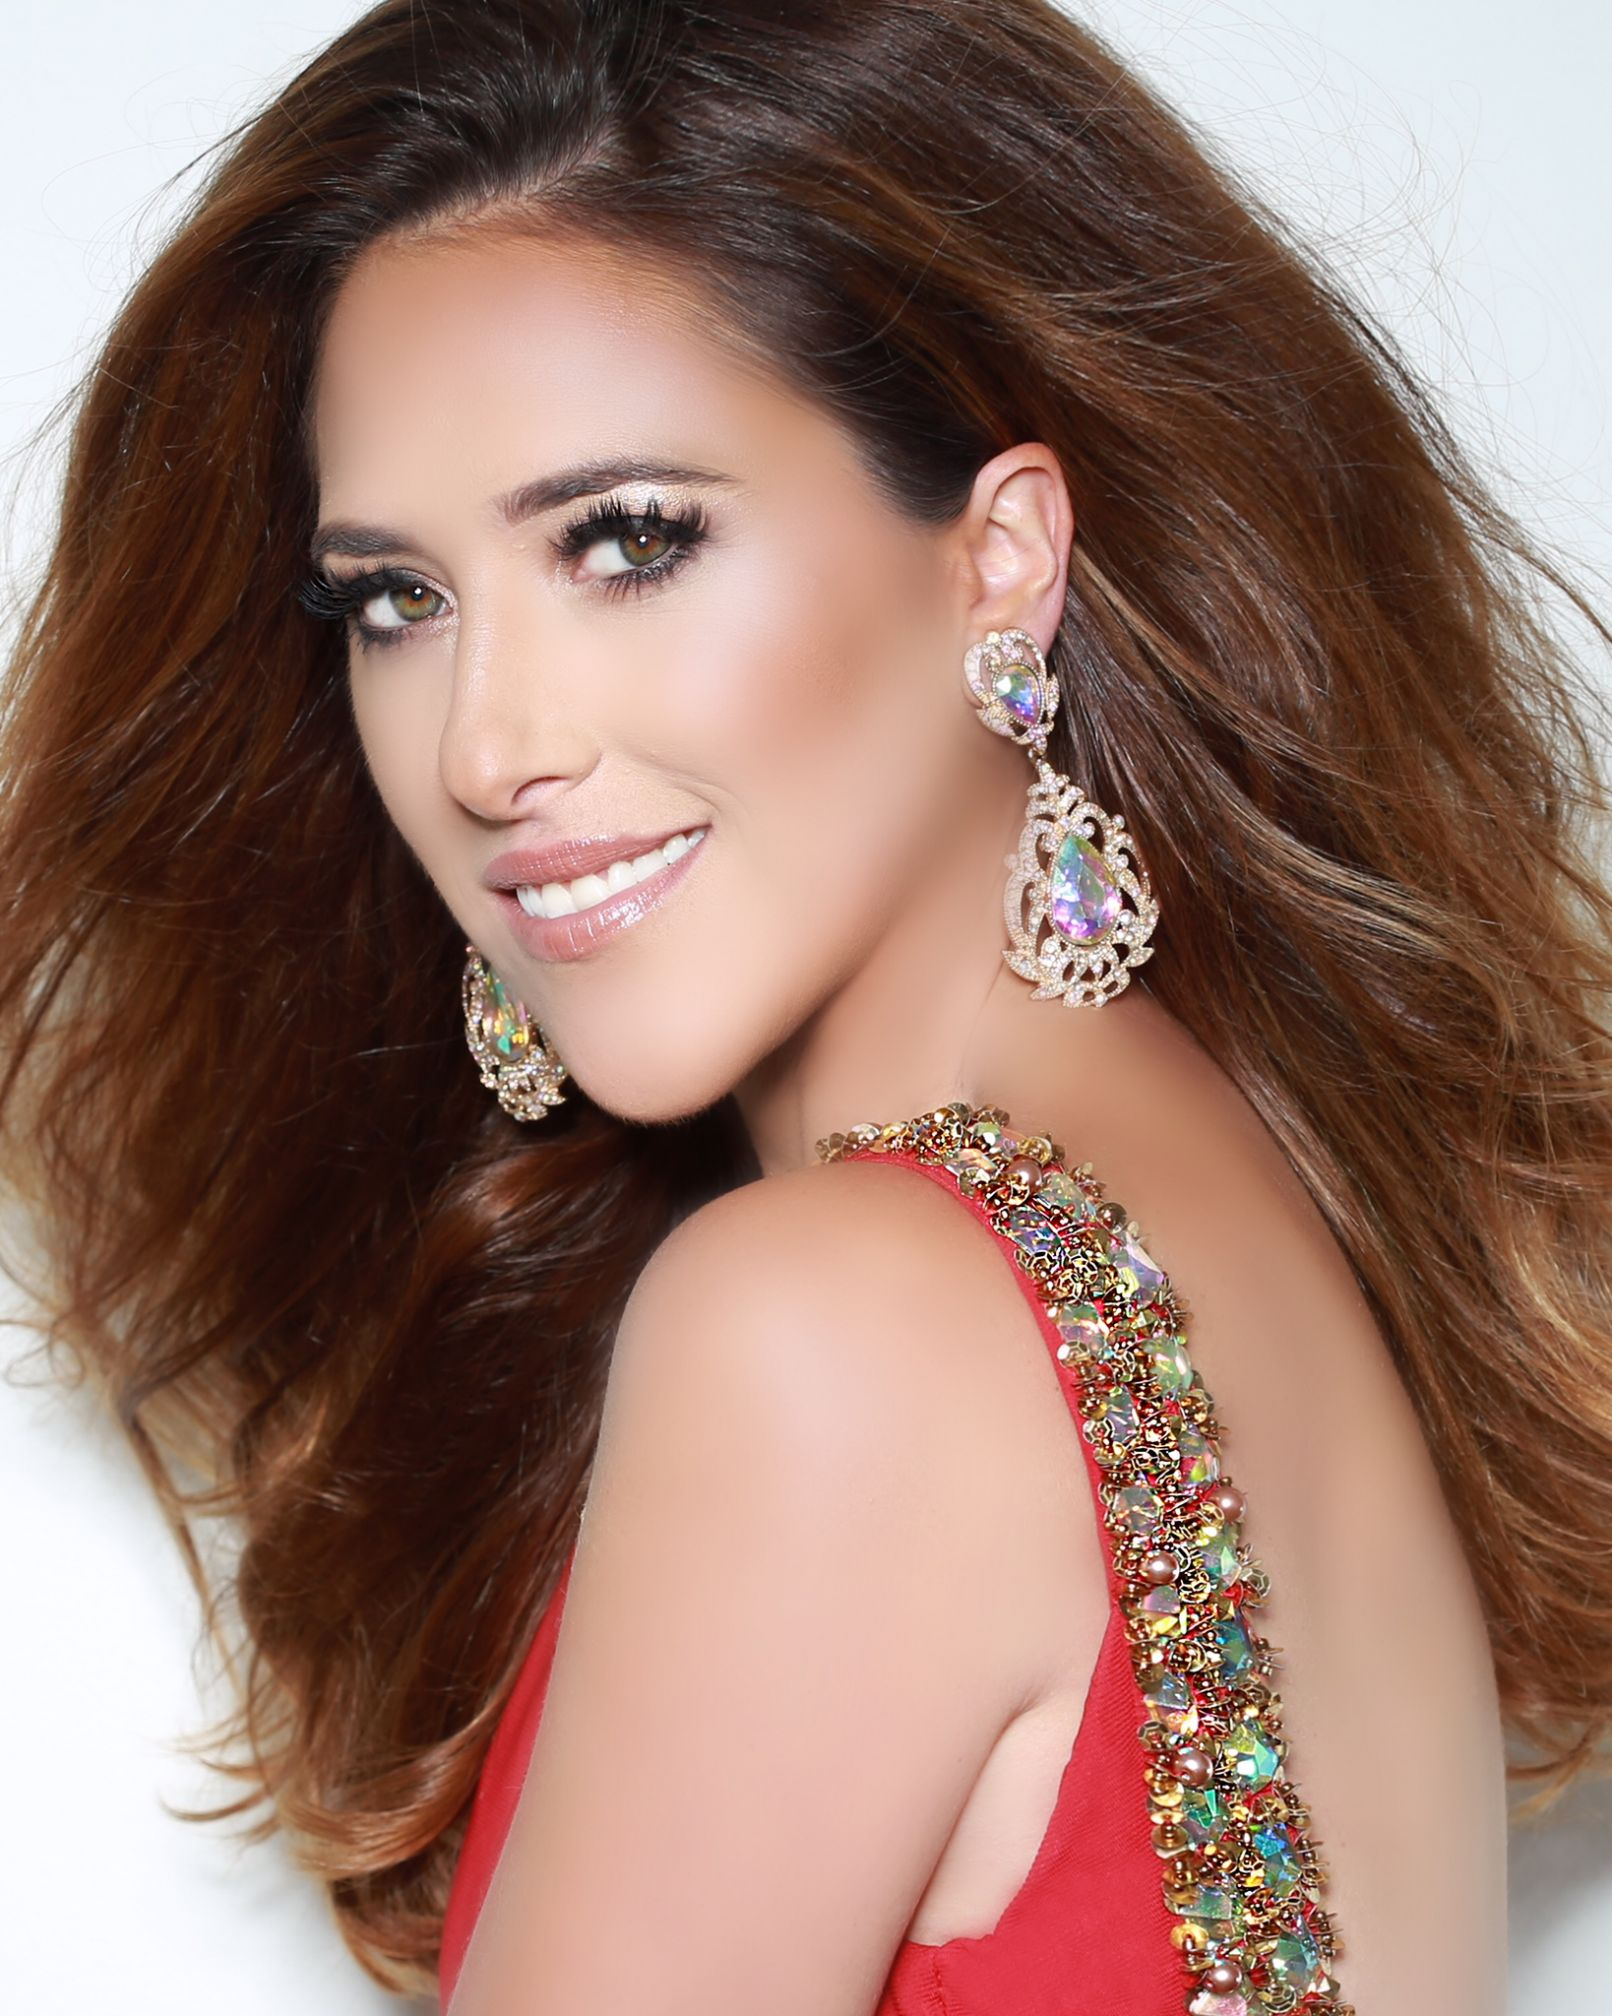 Julie Cangialosi is Mrs. of America and will compete at Mrs. World in December.